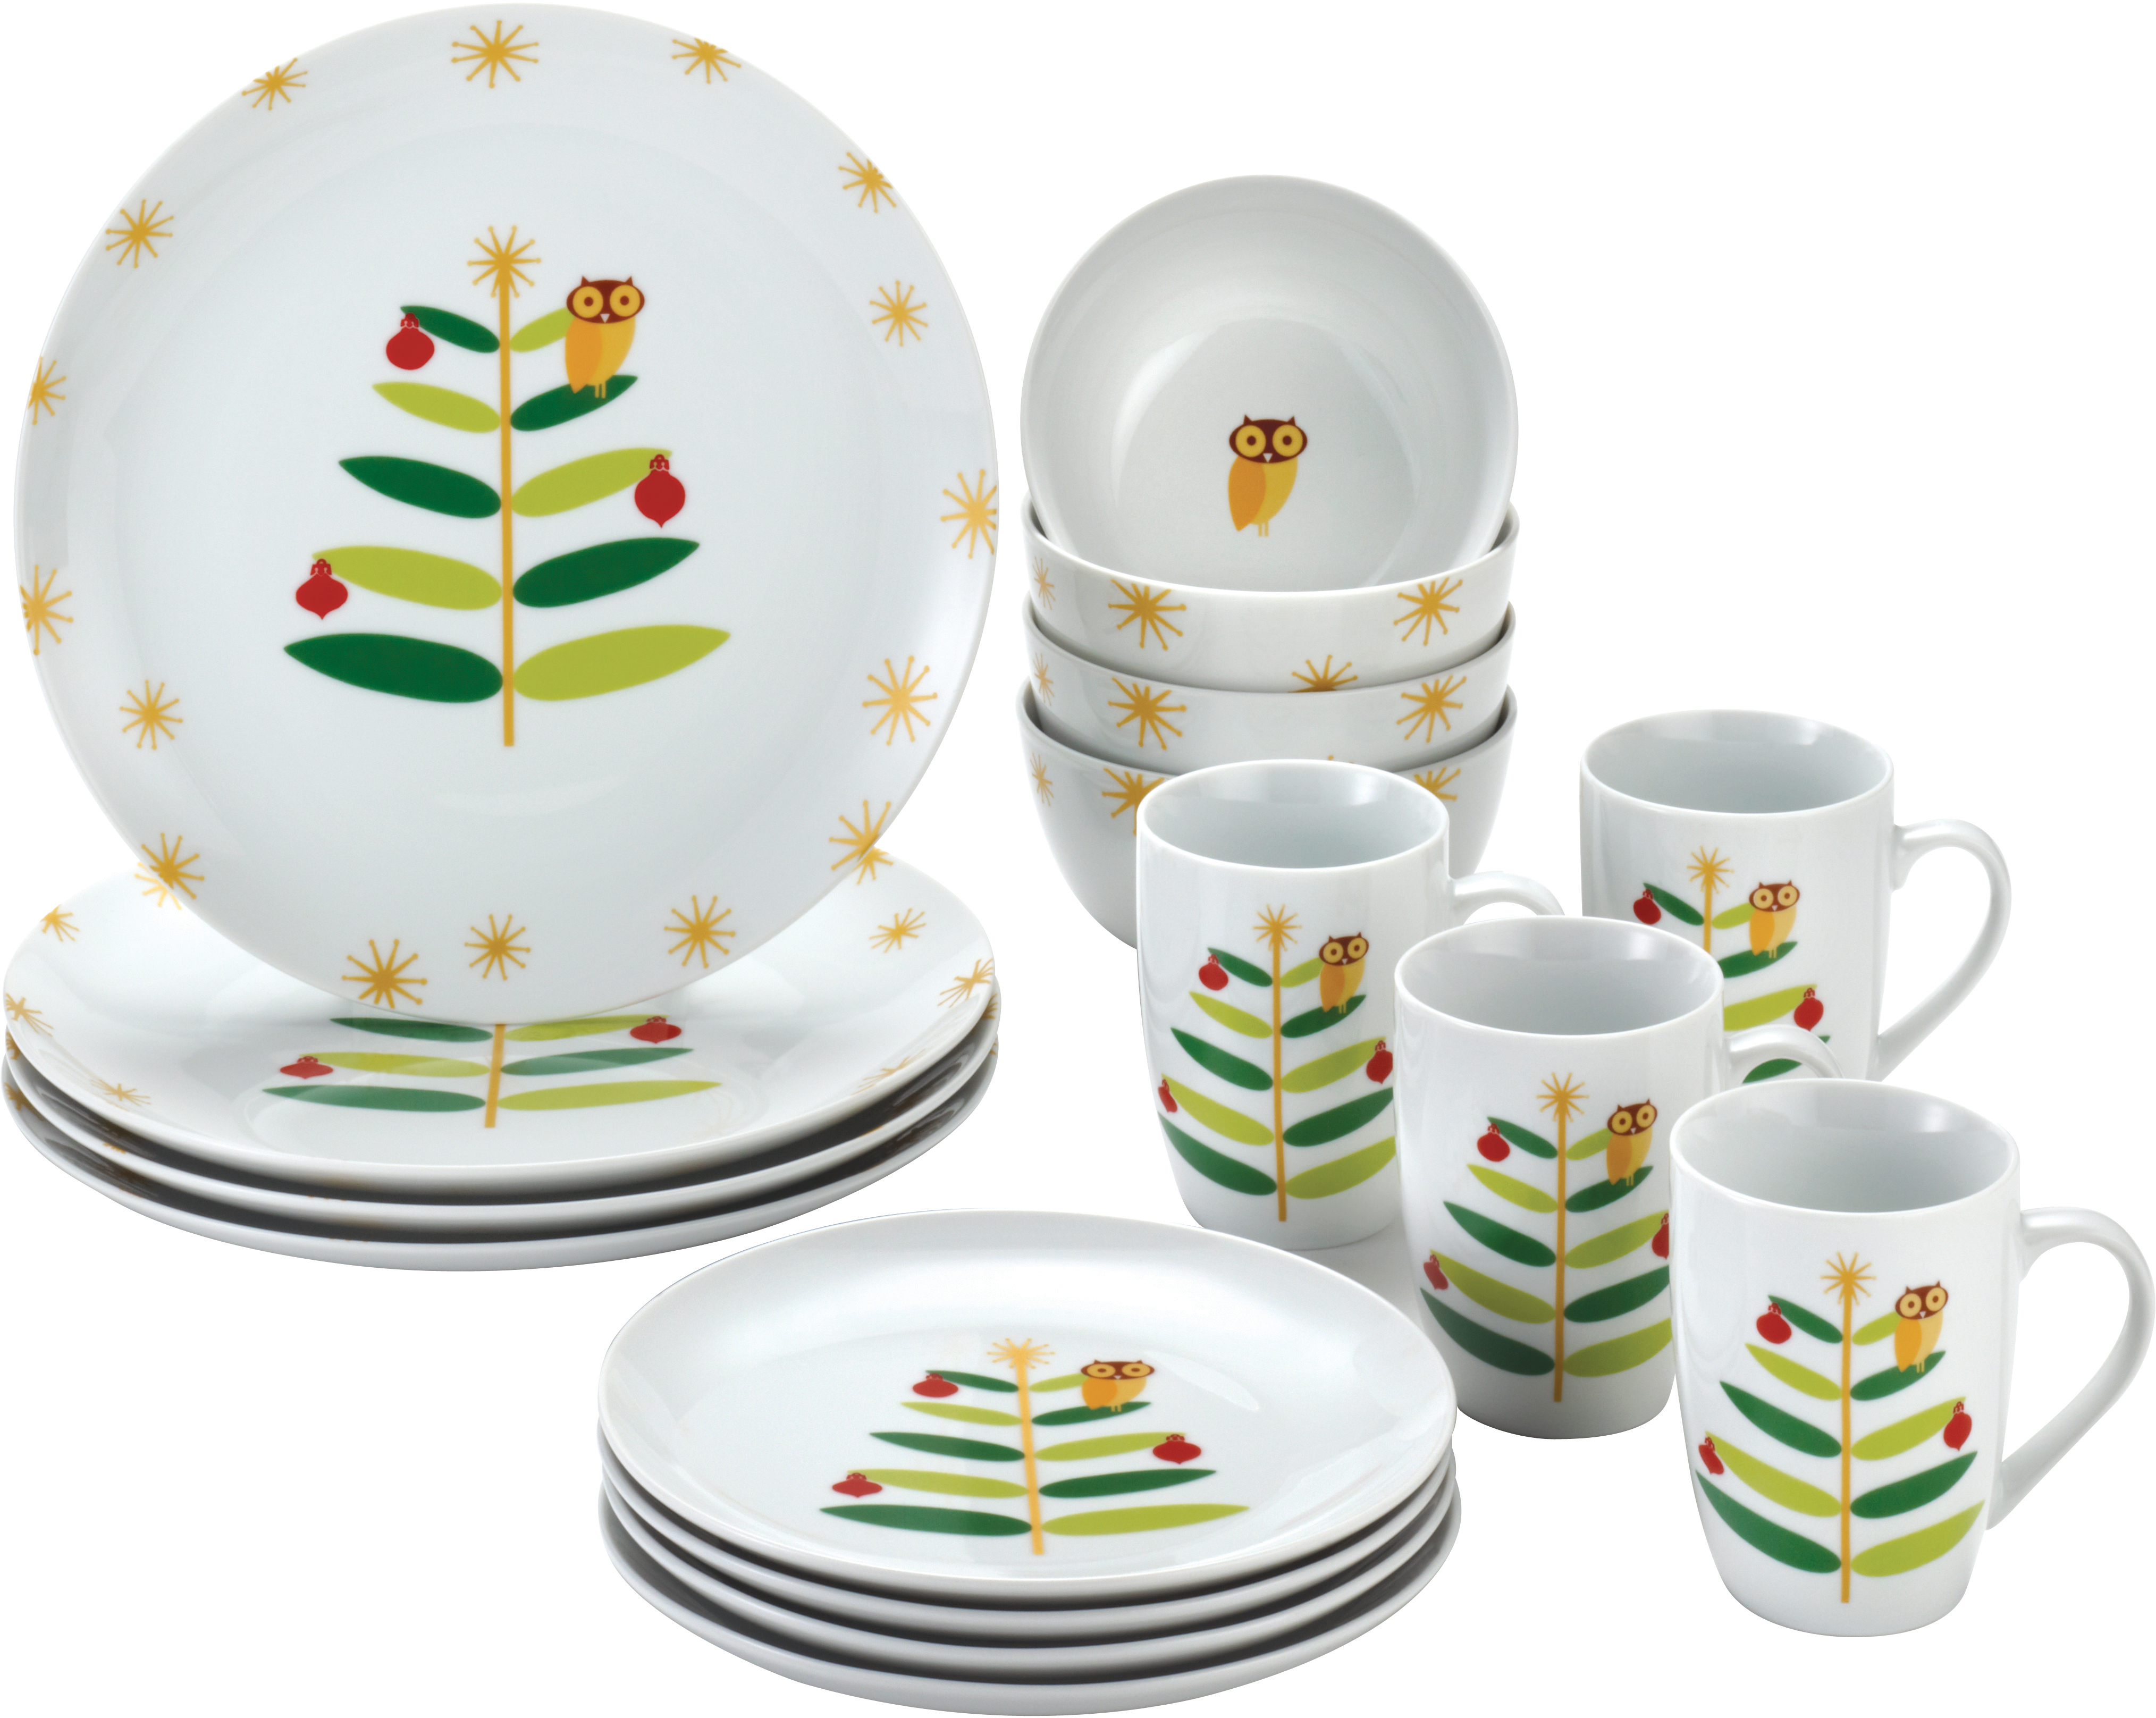 Rachael Ray Holiday Hoot 16 Piece Porcelain Dinnerware Set, Service for 4